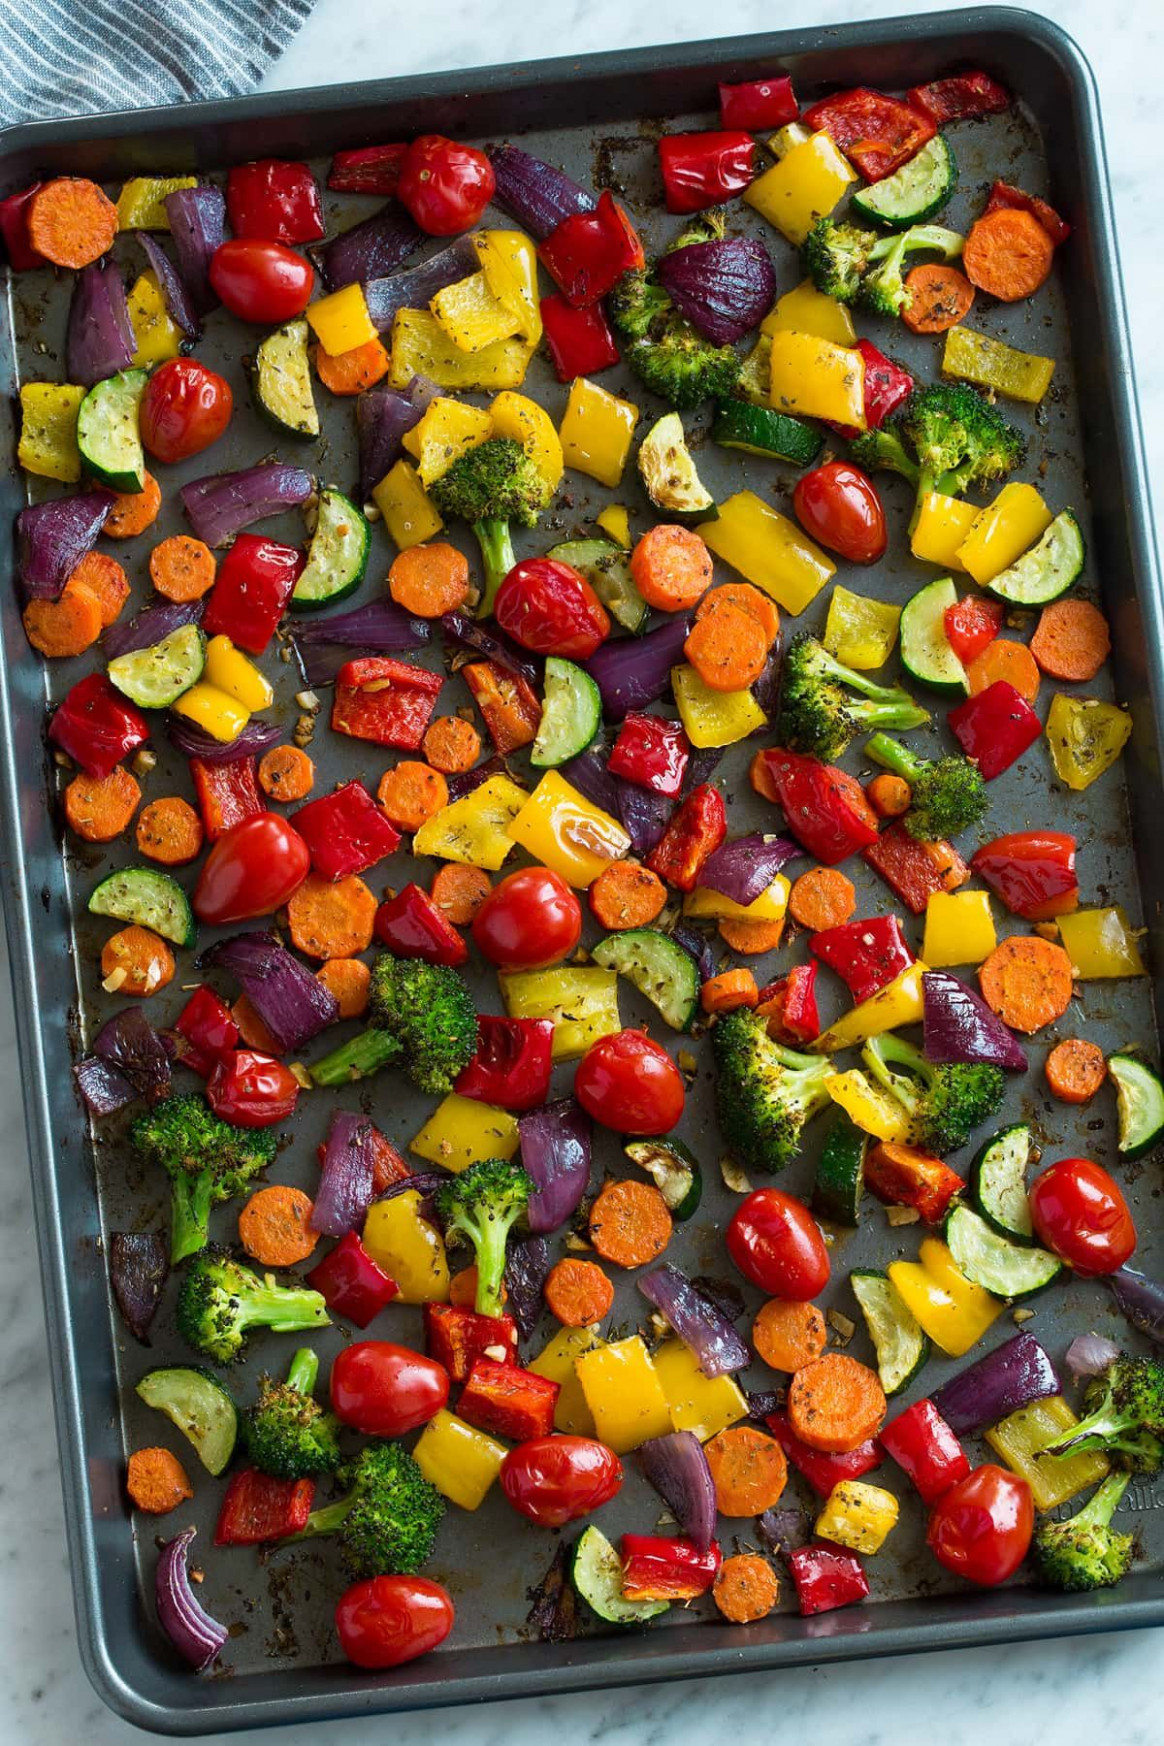 Oven Roasted Vegetables Recipe - Cooking Classy | Recipes in ..